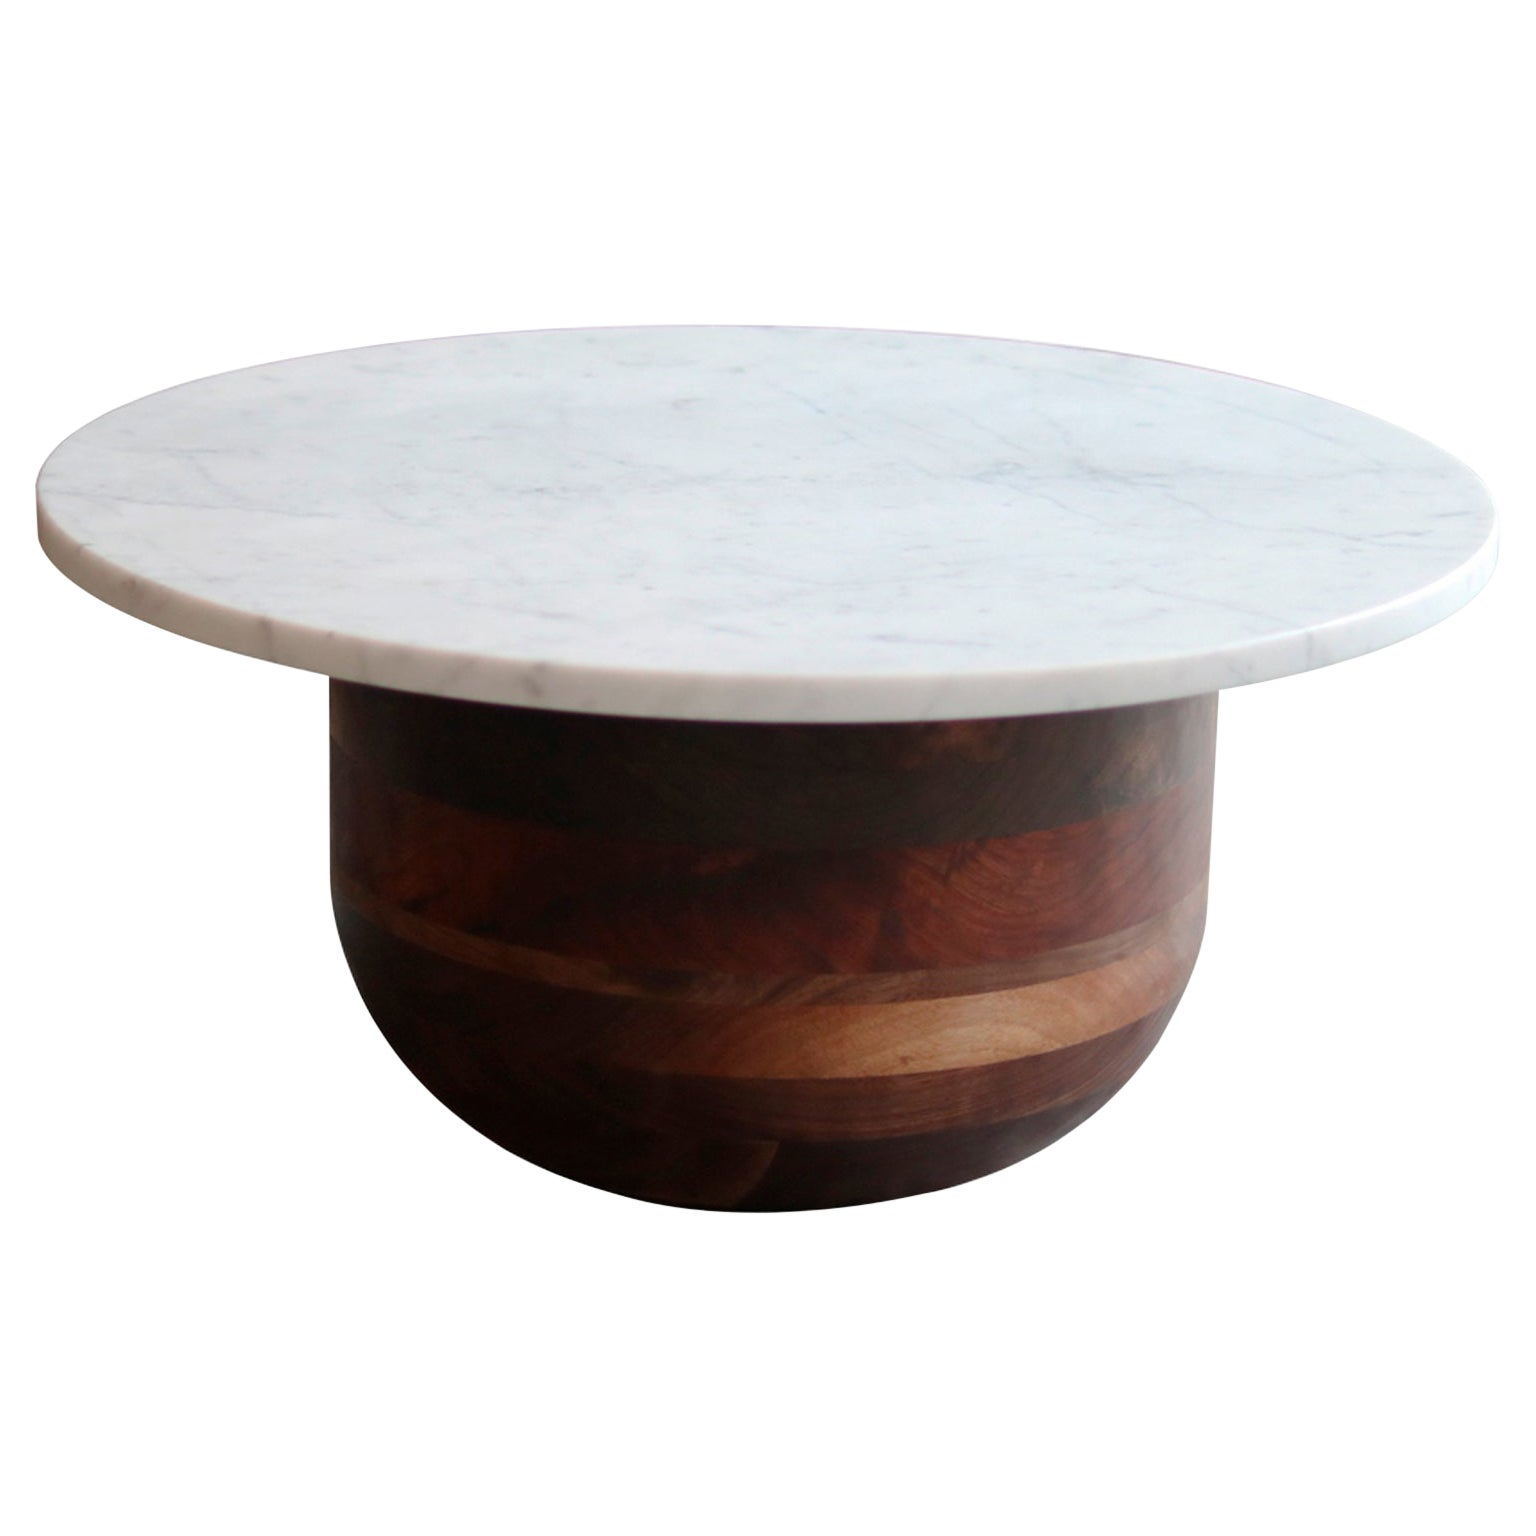 Bertrand Honed Carrera Marble and Walnut Round Pedestal Side Table